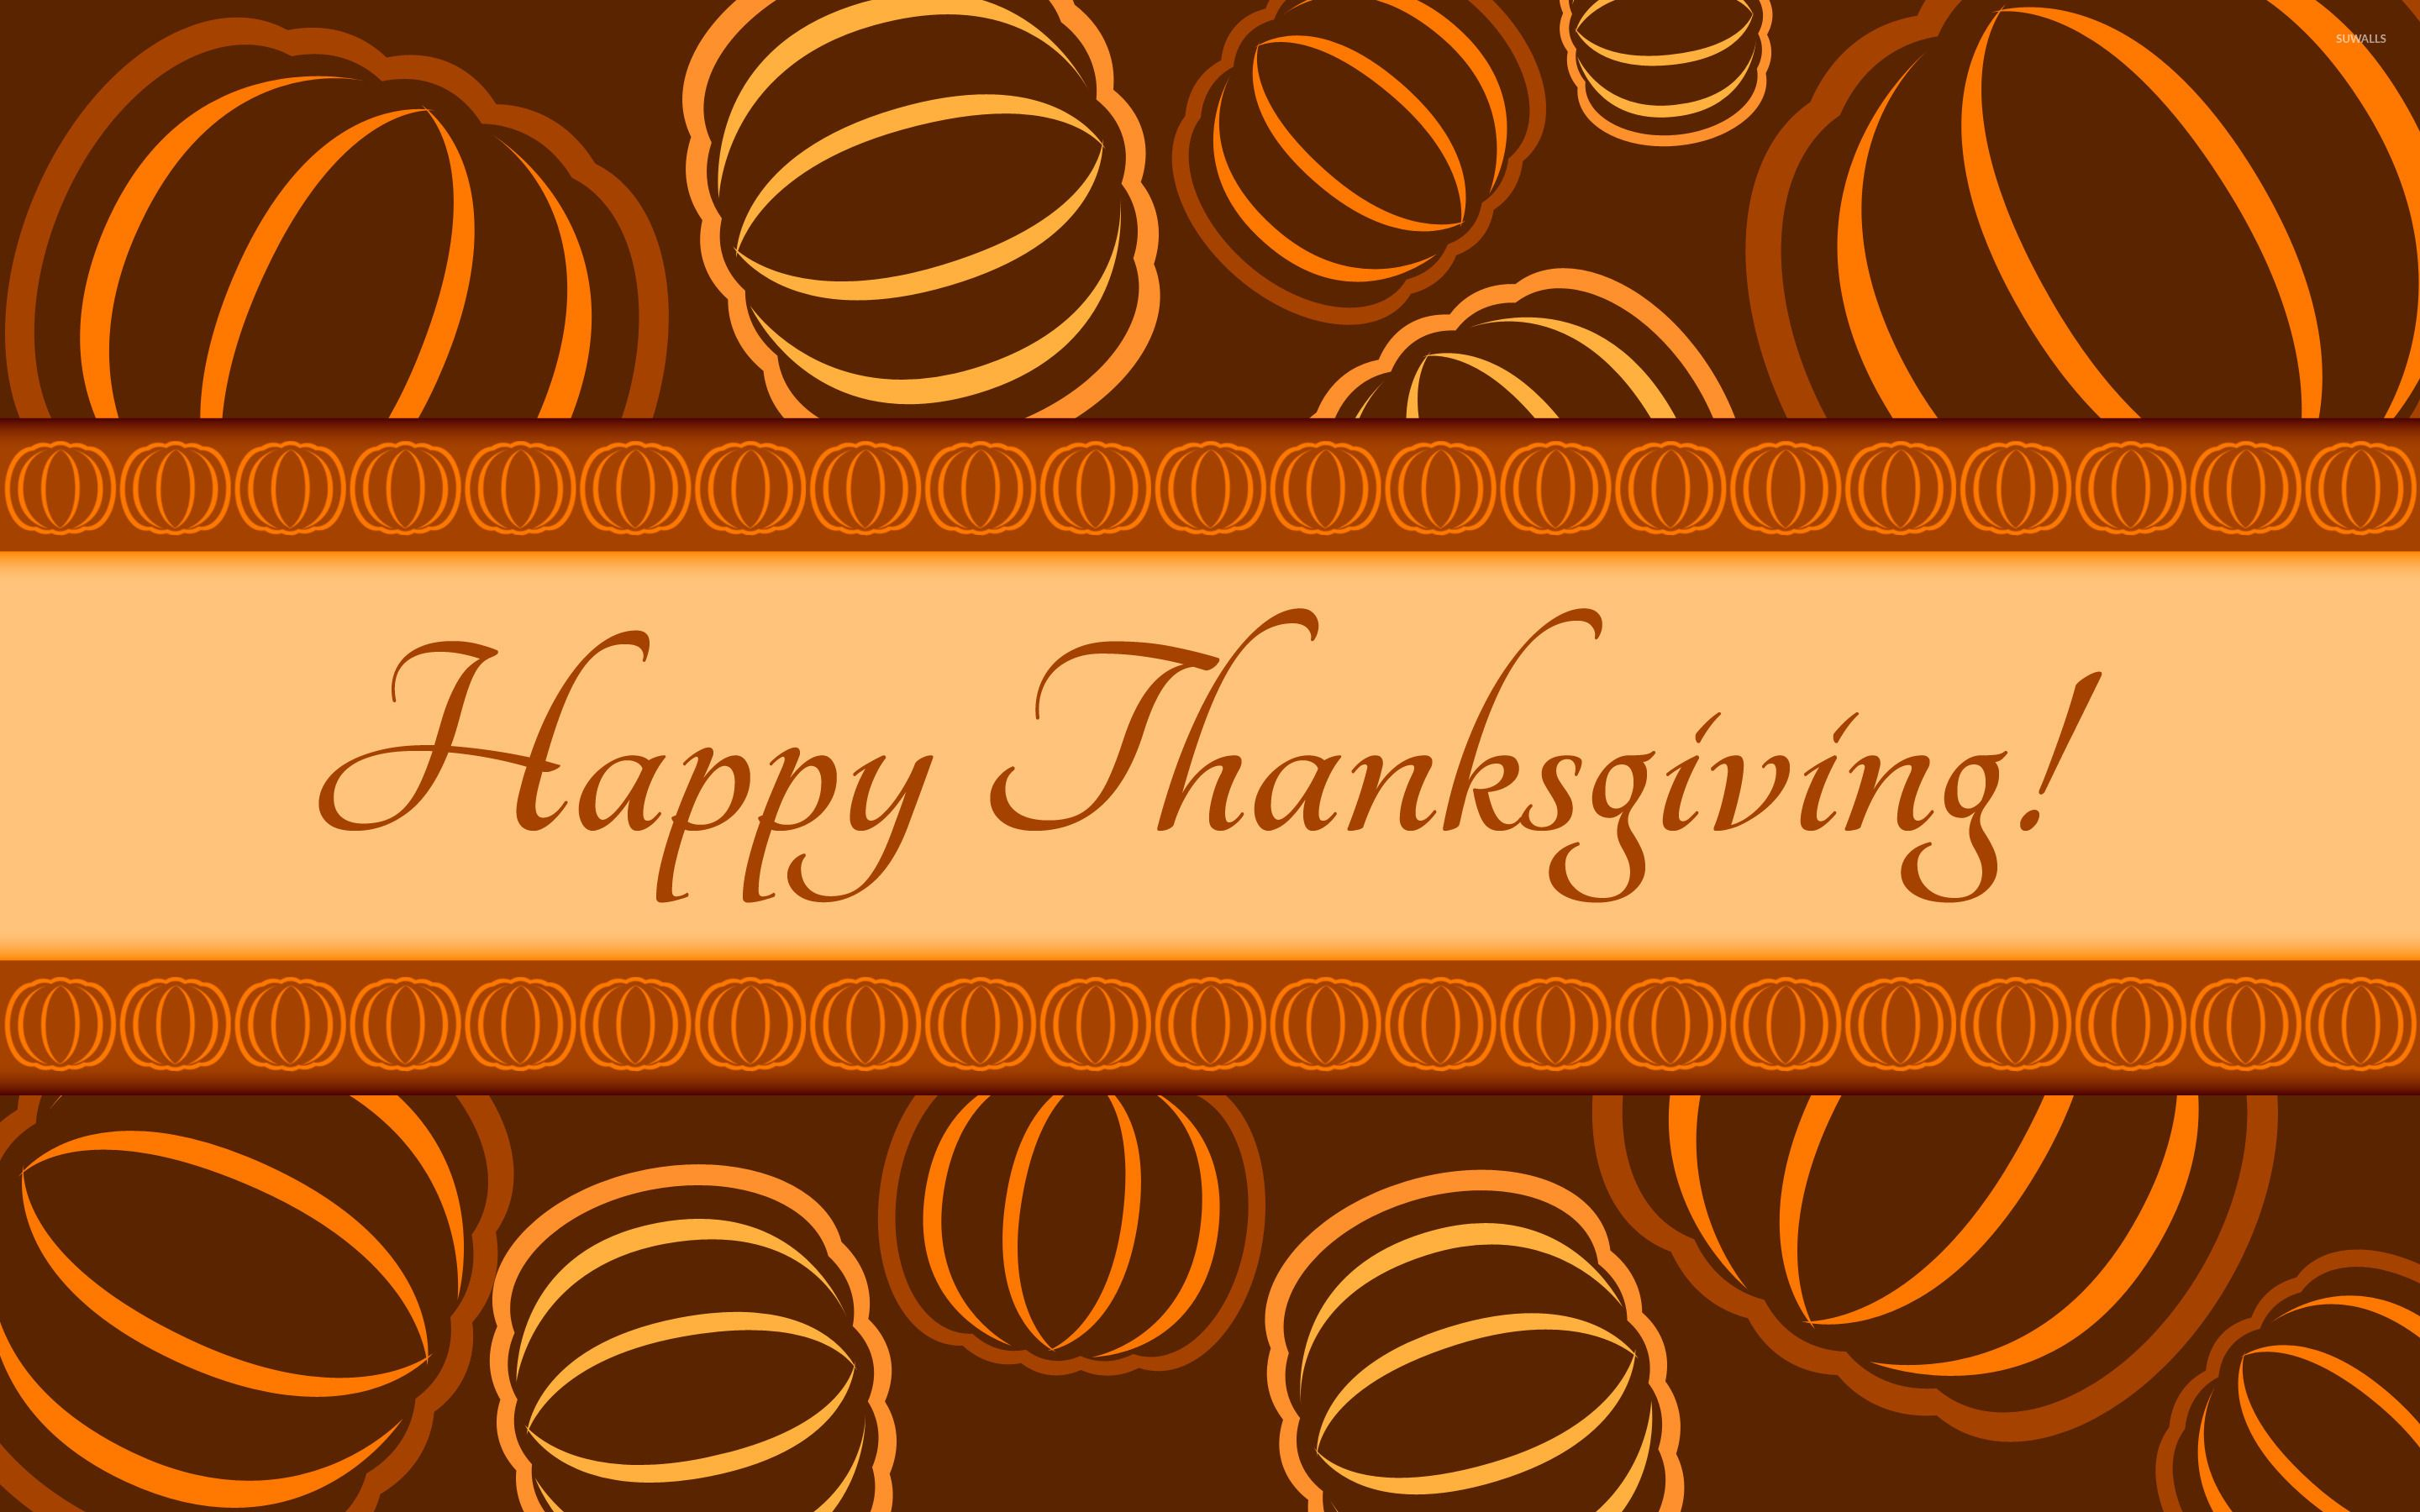 Happy Thanksgiving! wallpapers